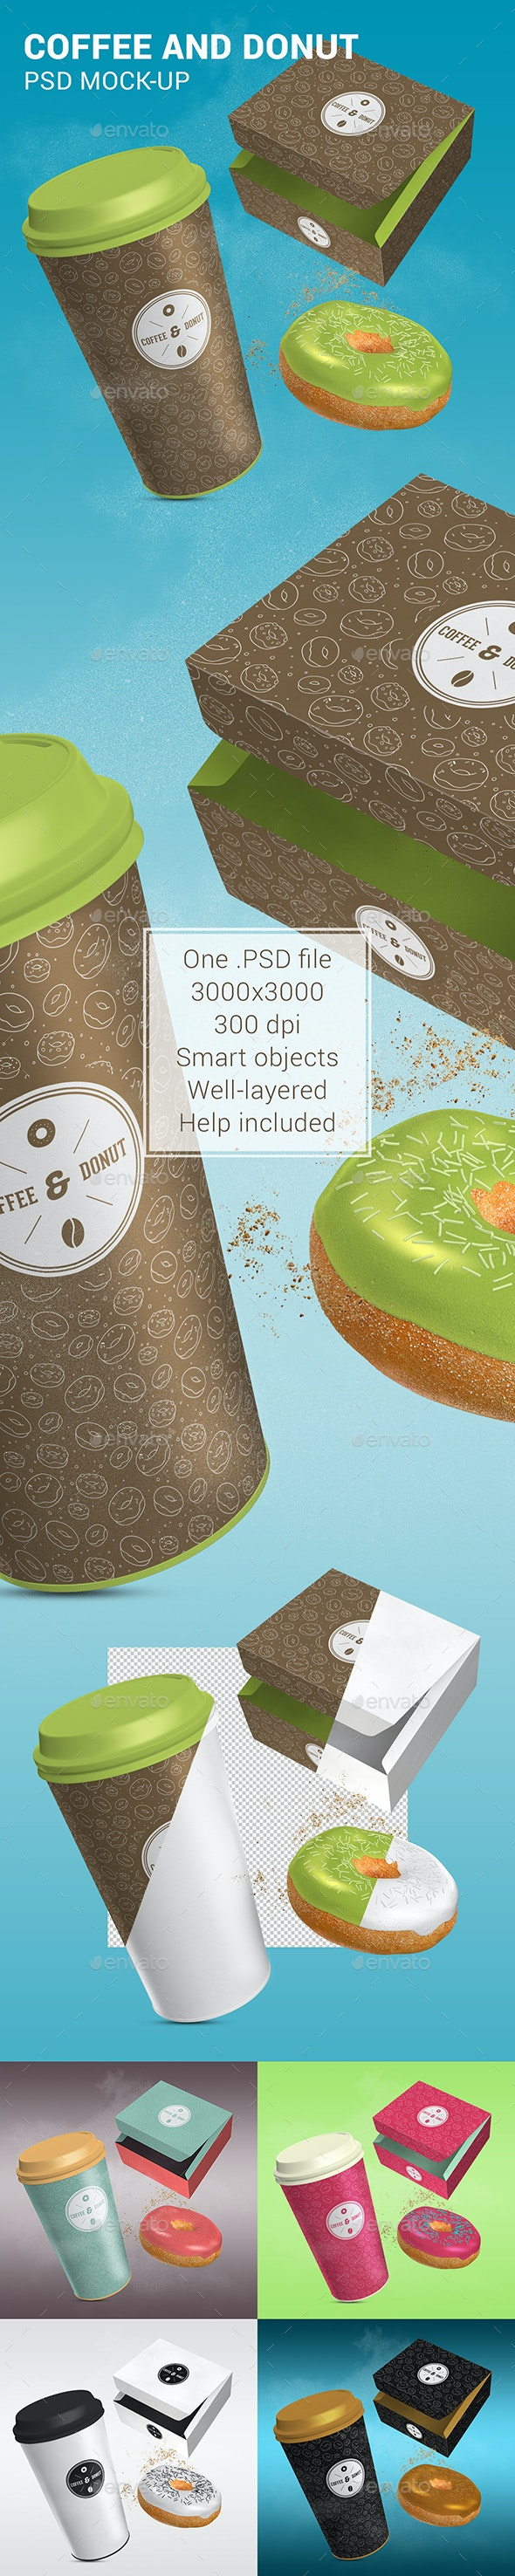 Coffee and Donut Mock-Up - Food and Drink Packaging